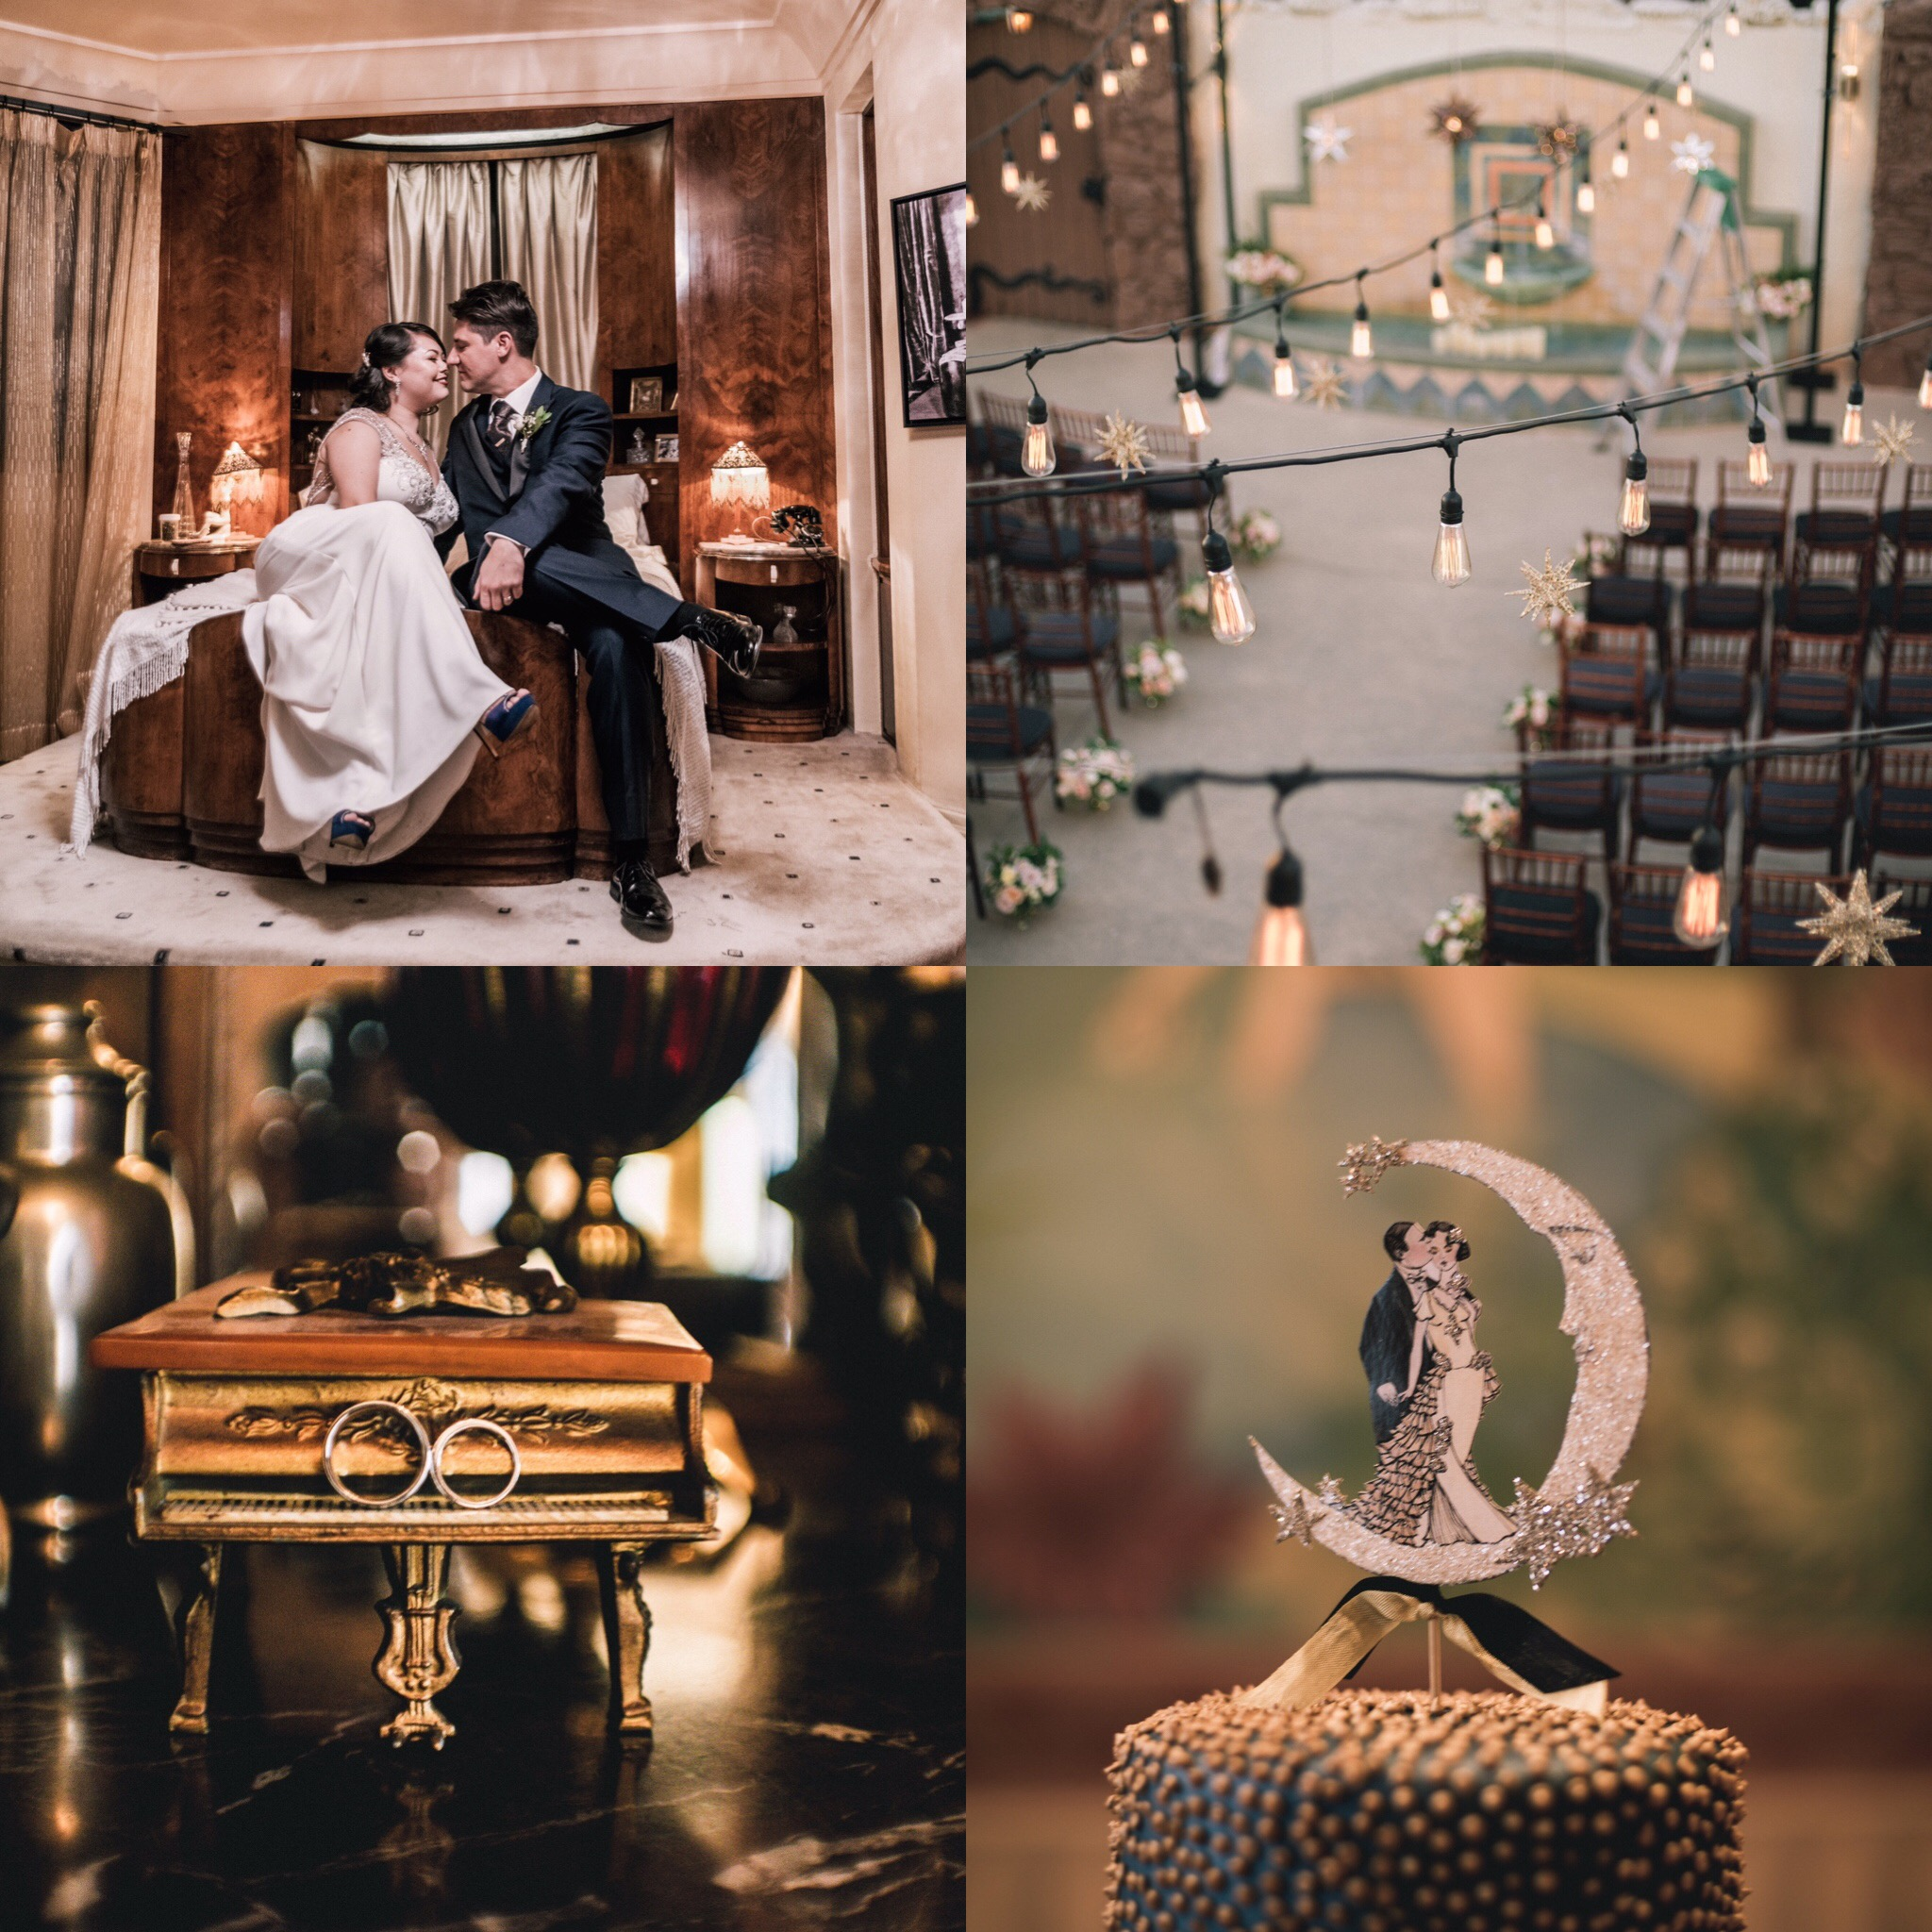 1920's Vintage Wedding at Oviatt Penthouse I love you to the moon and back